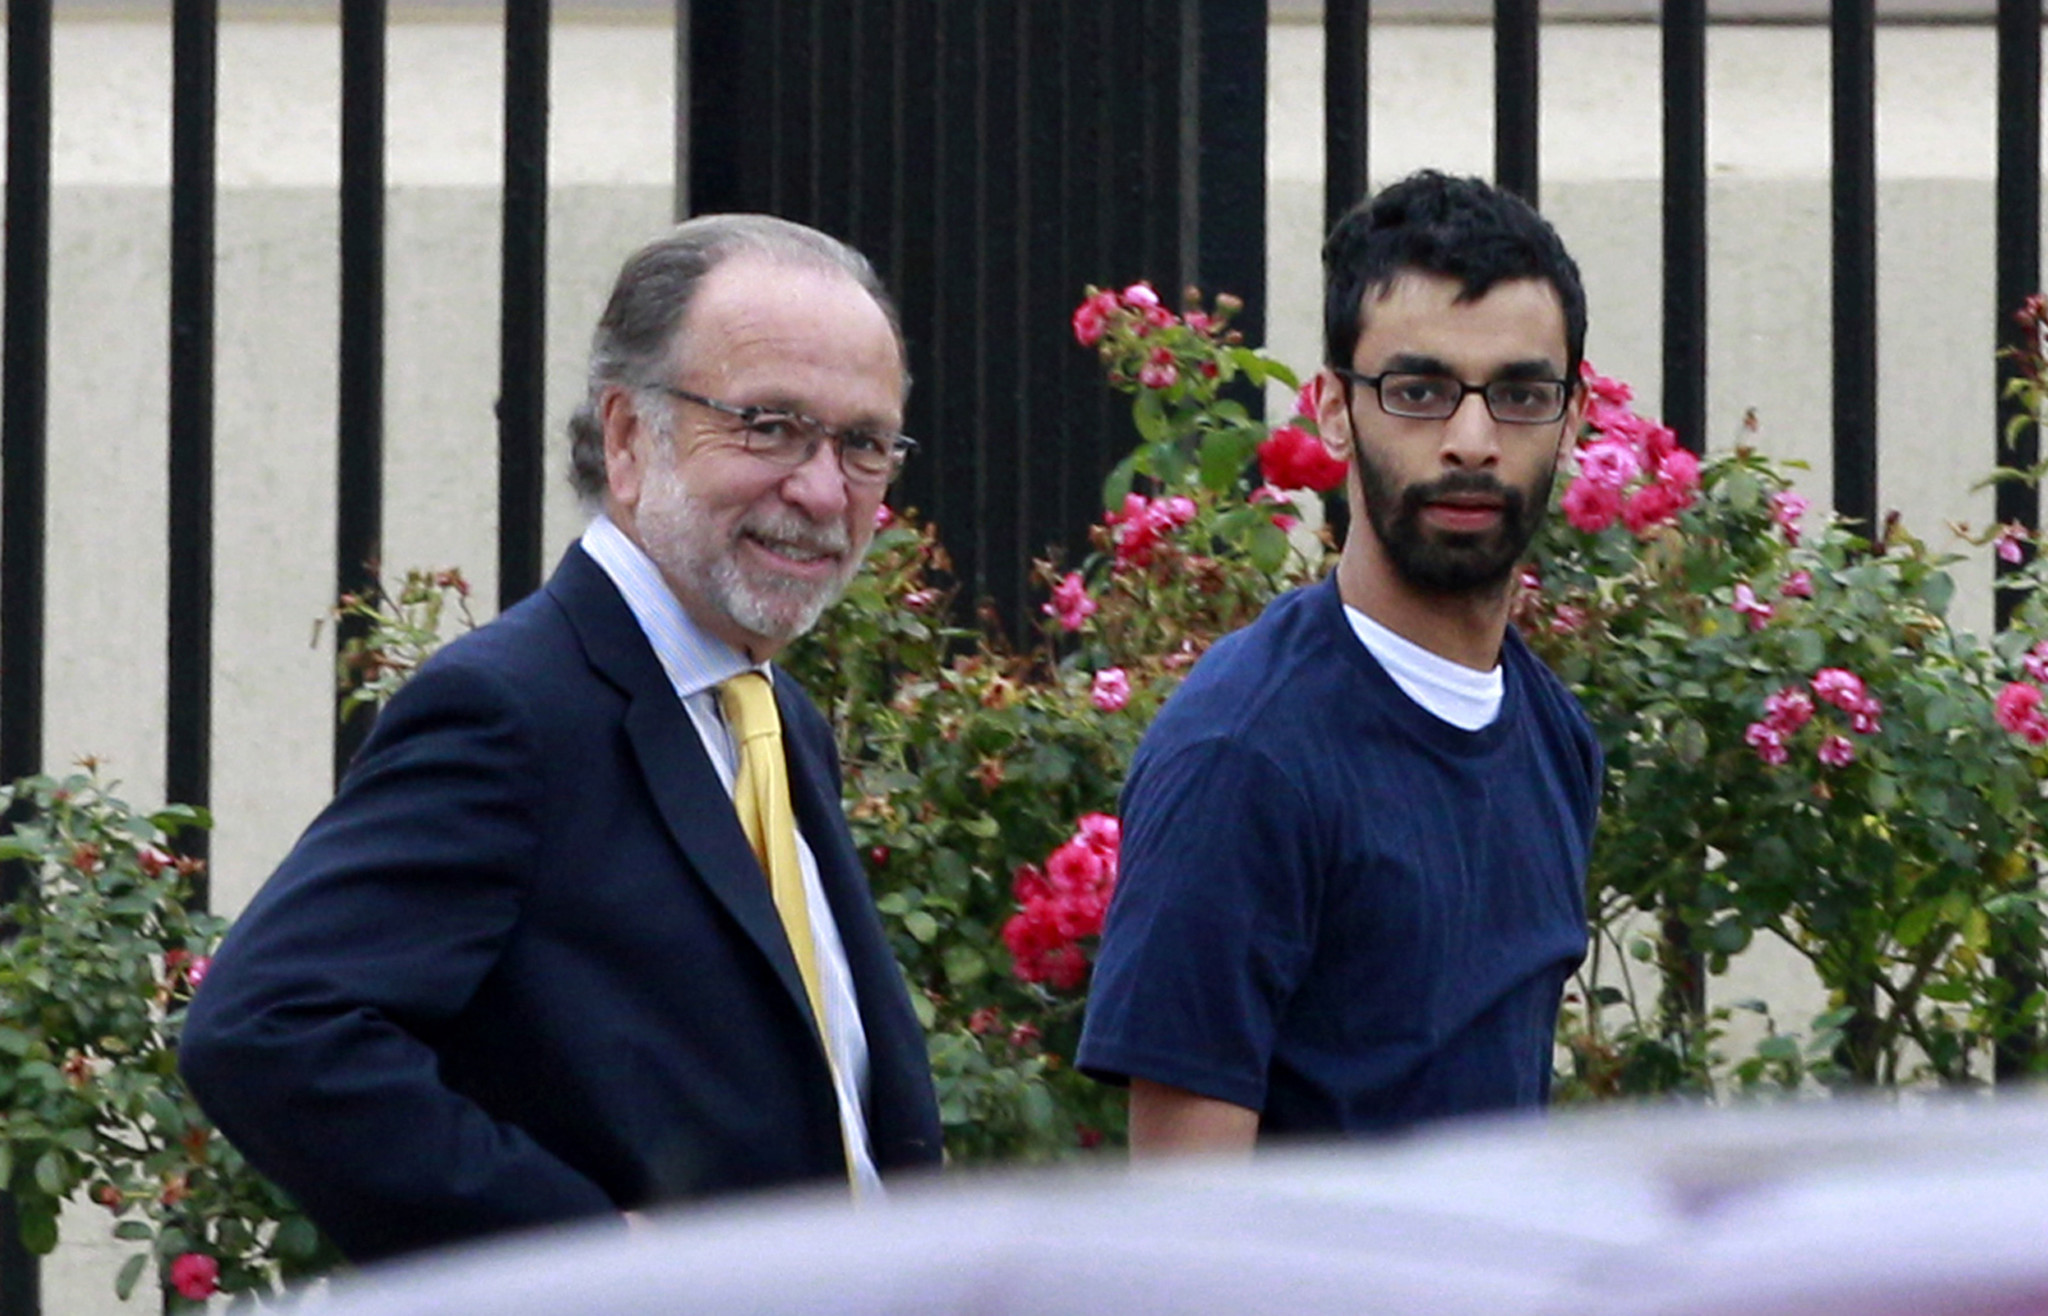 Convictions tossed, new trial ordered in Rutgers suicide case